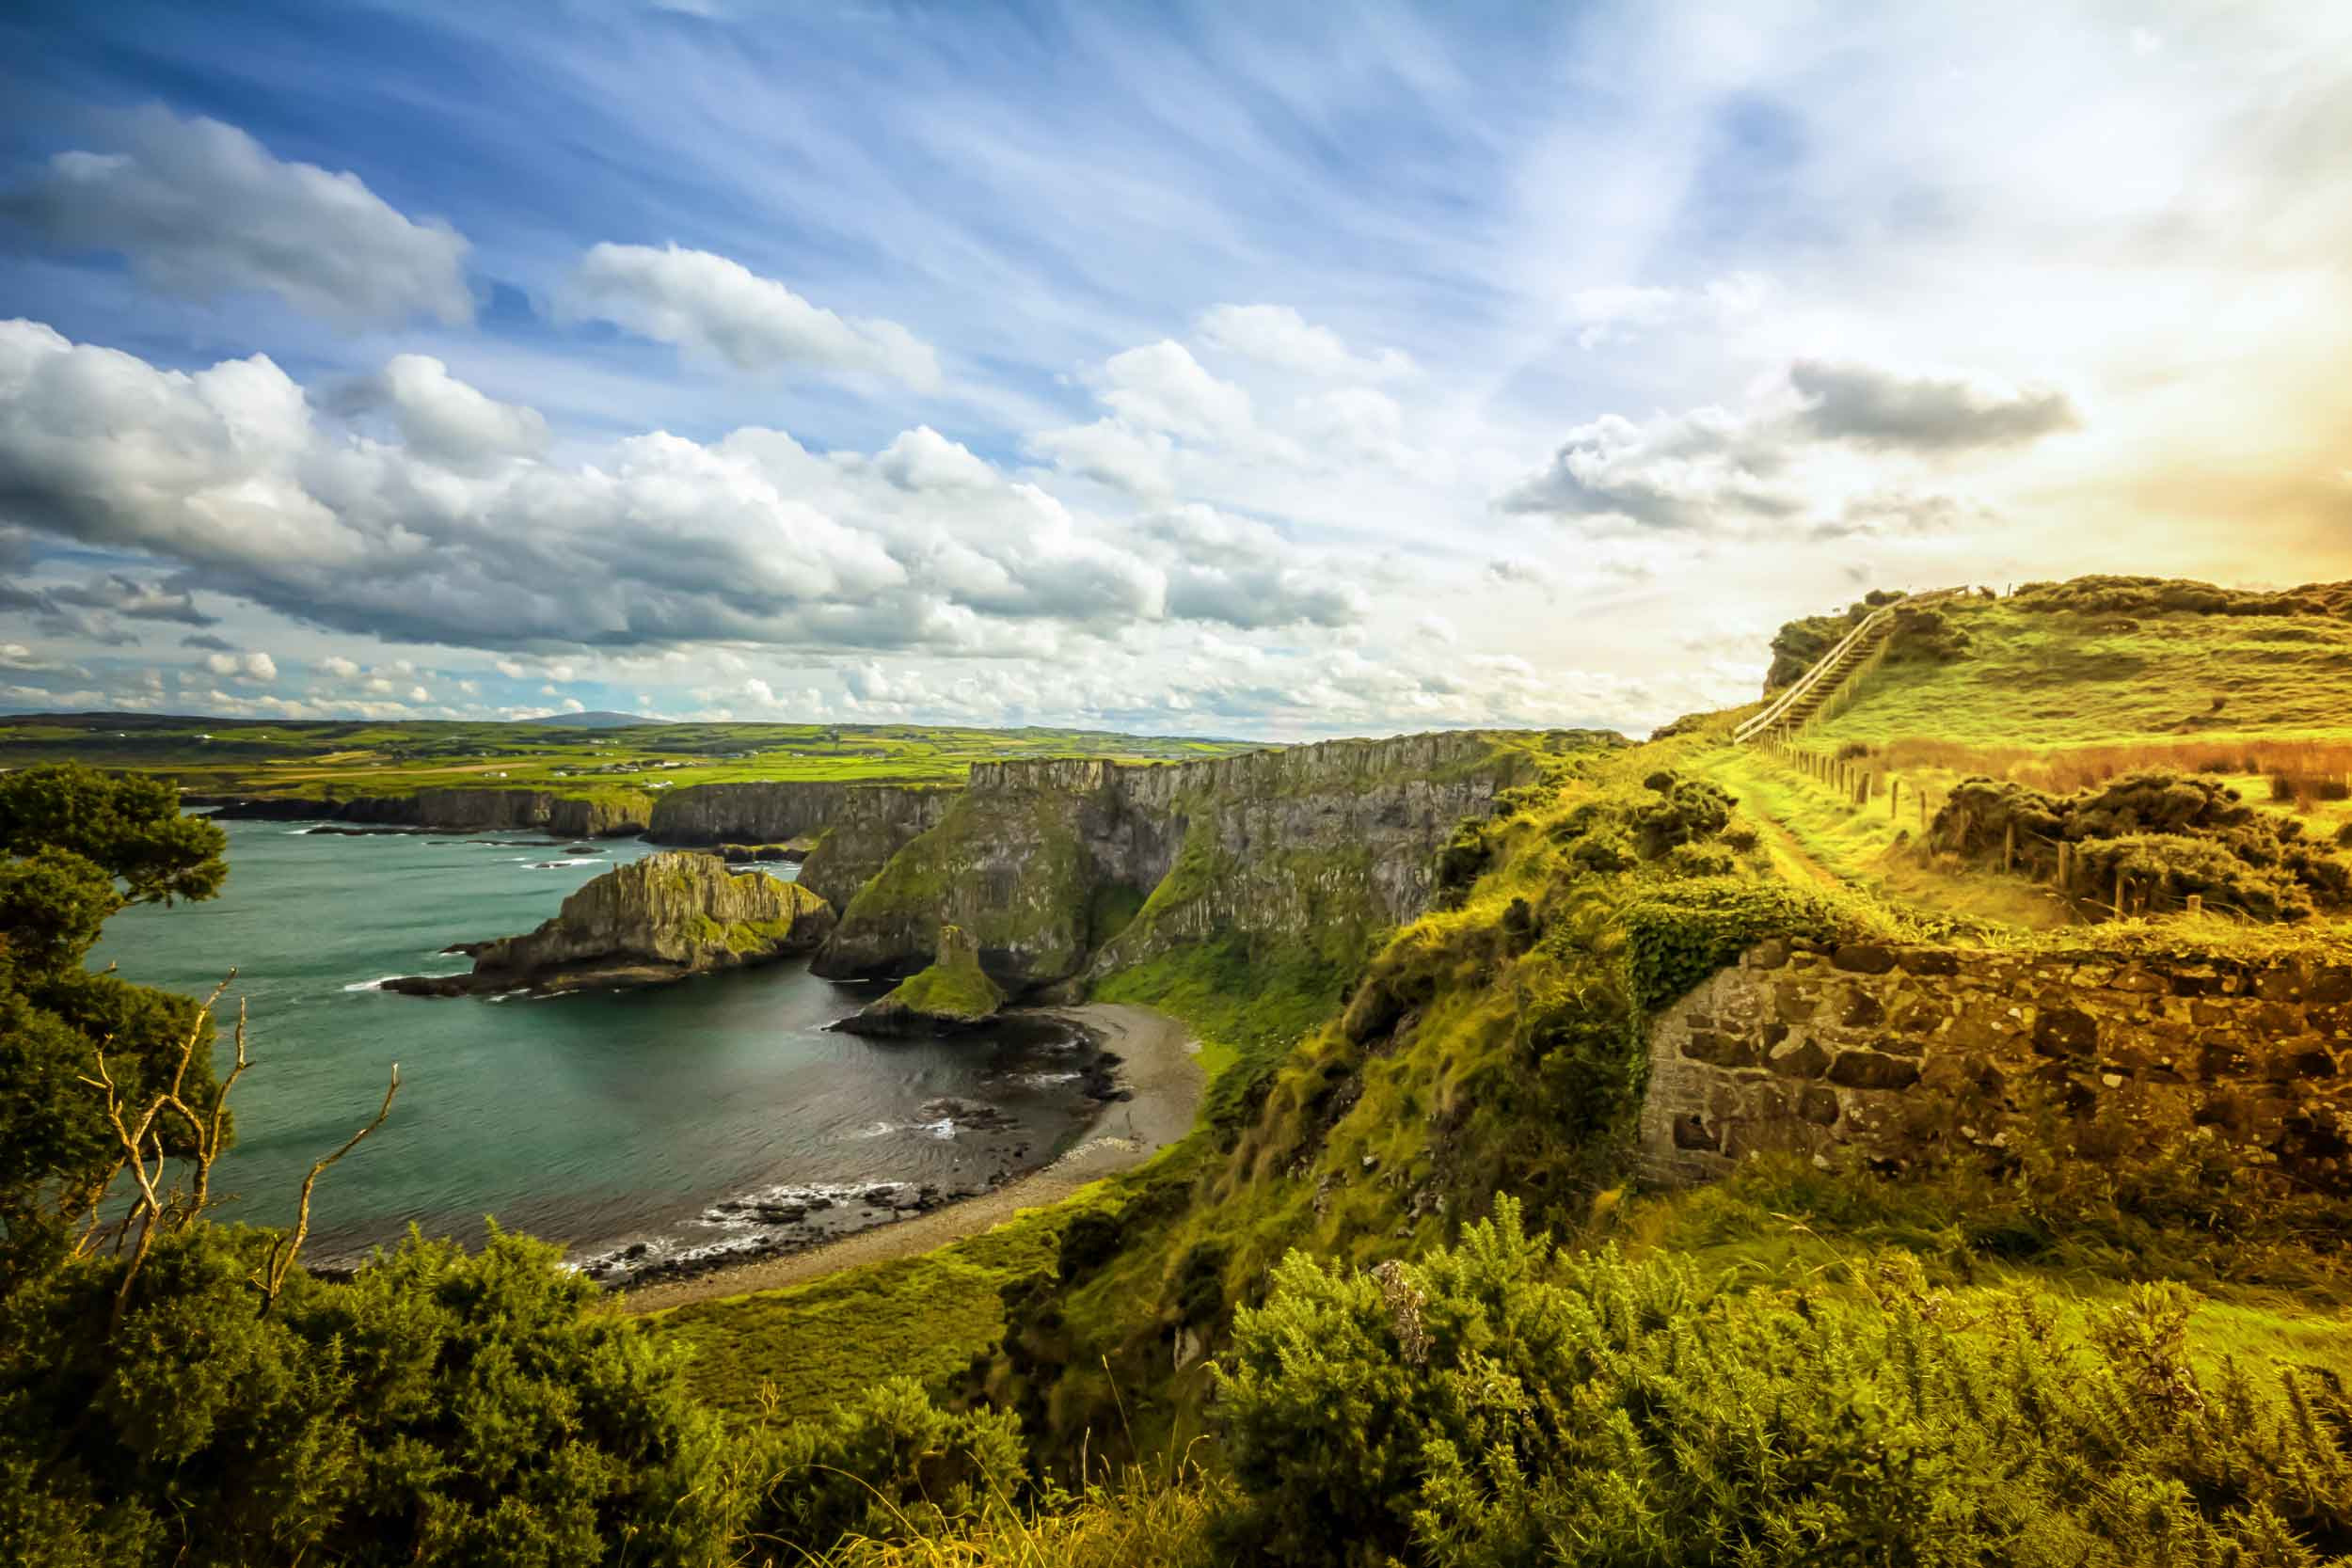 Ireland's legendary landscape and dramatic coastline are graced with ancient ruins and historic castles, churches, and country estates.